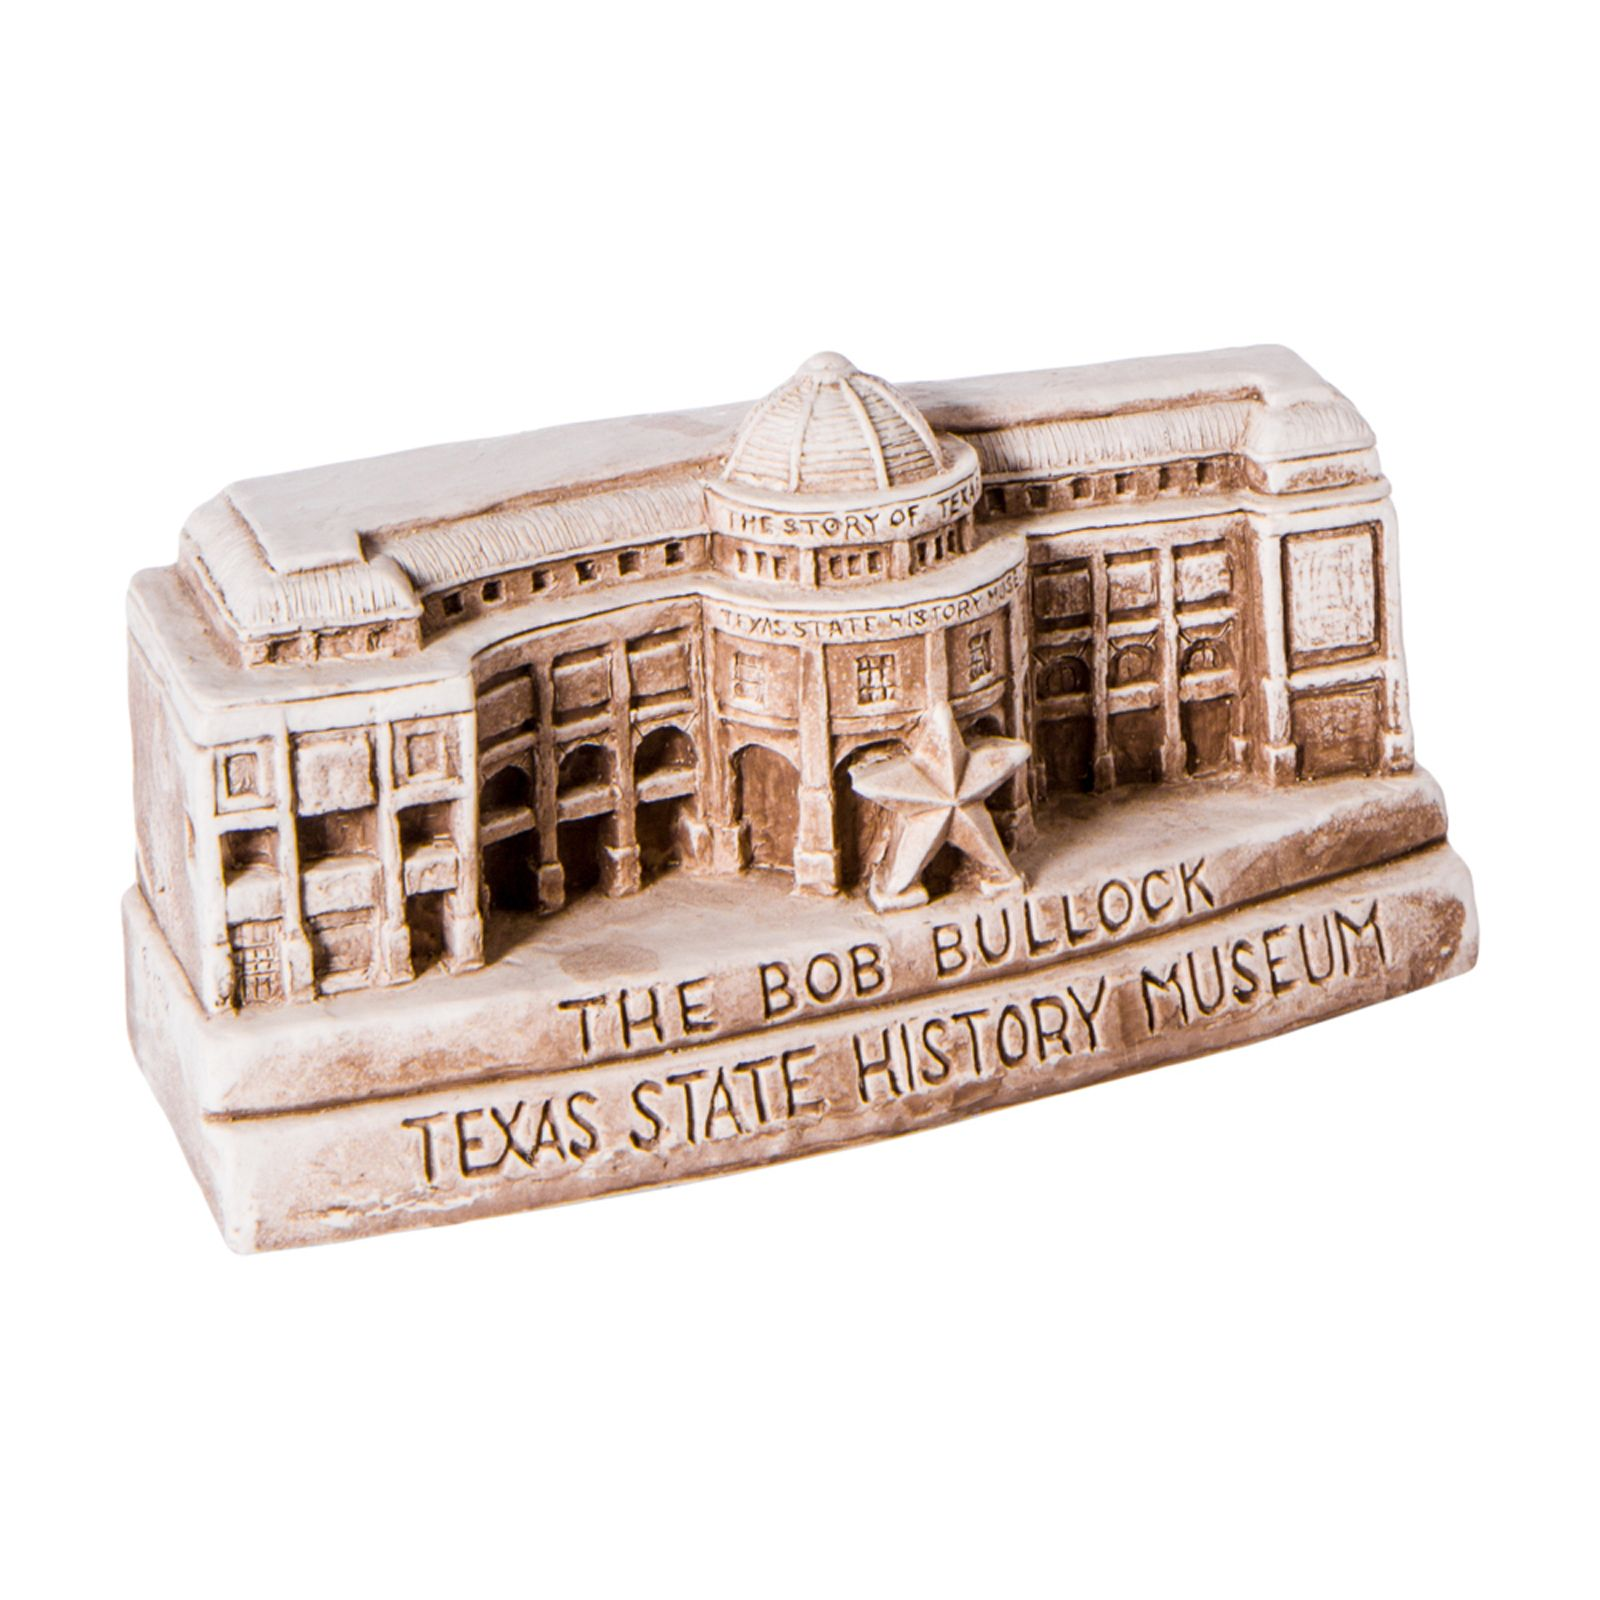 Bullock Museum Small Clay Replica